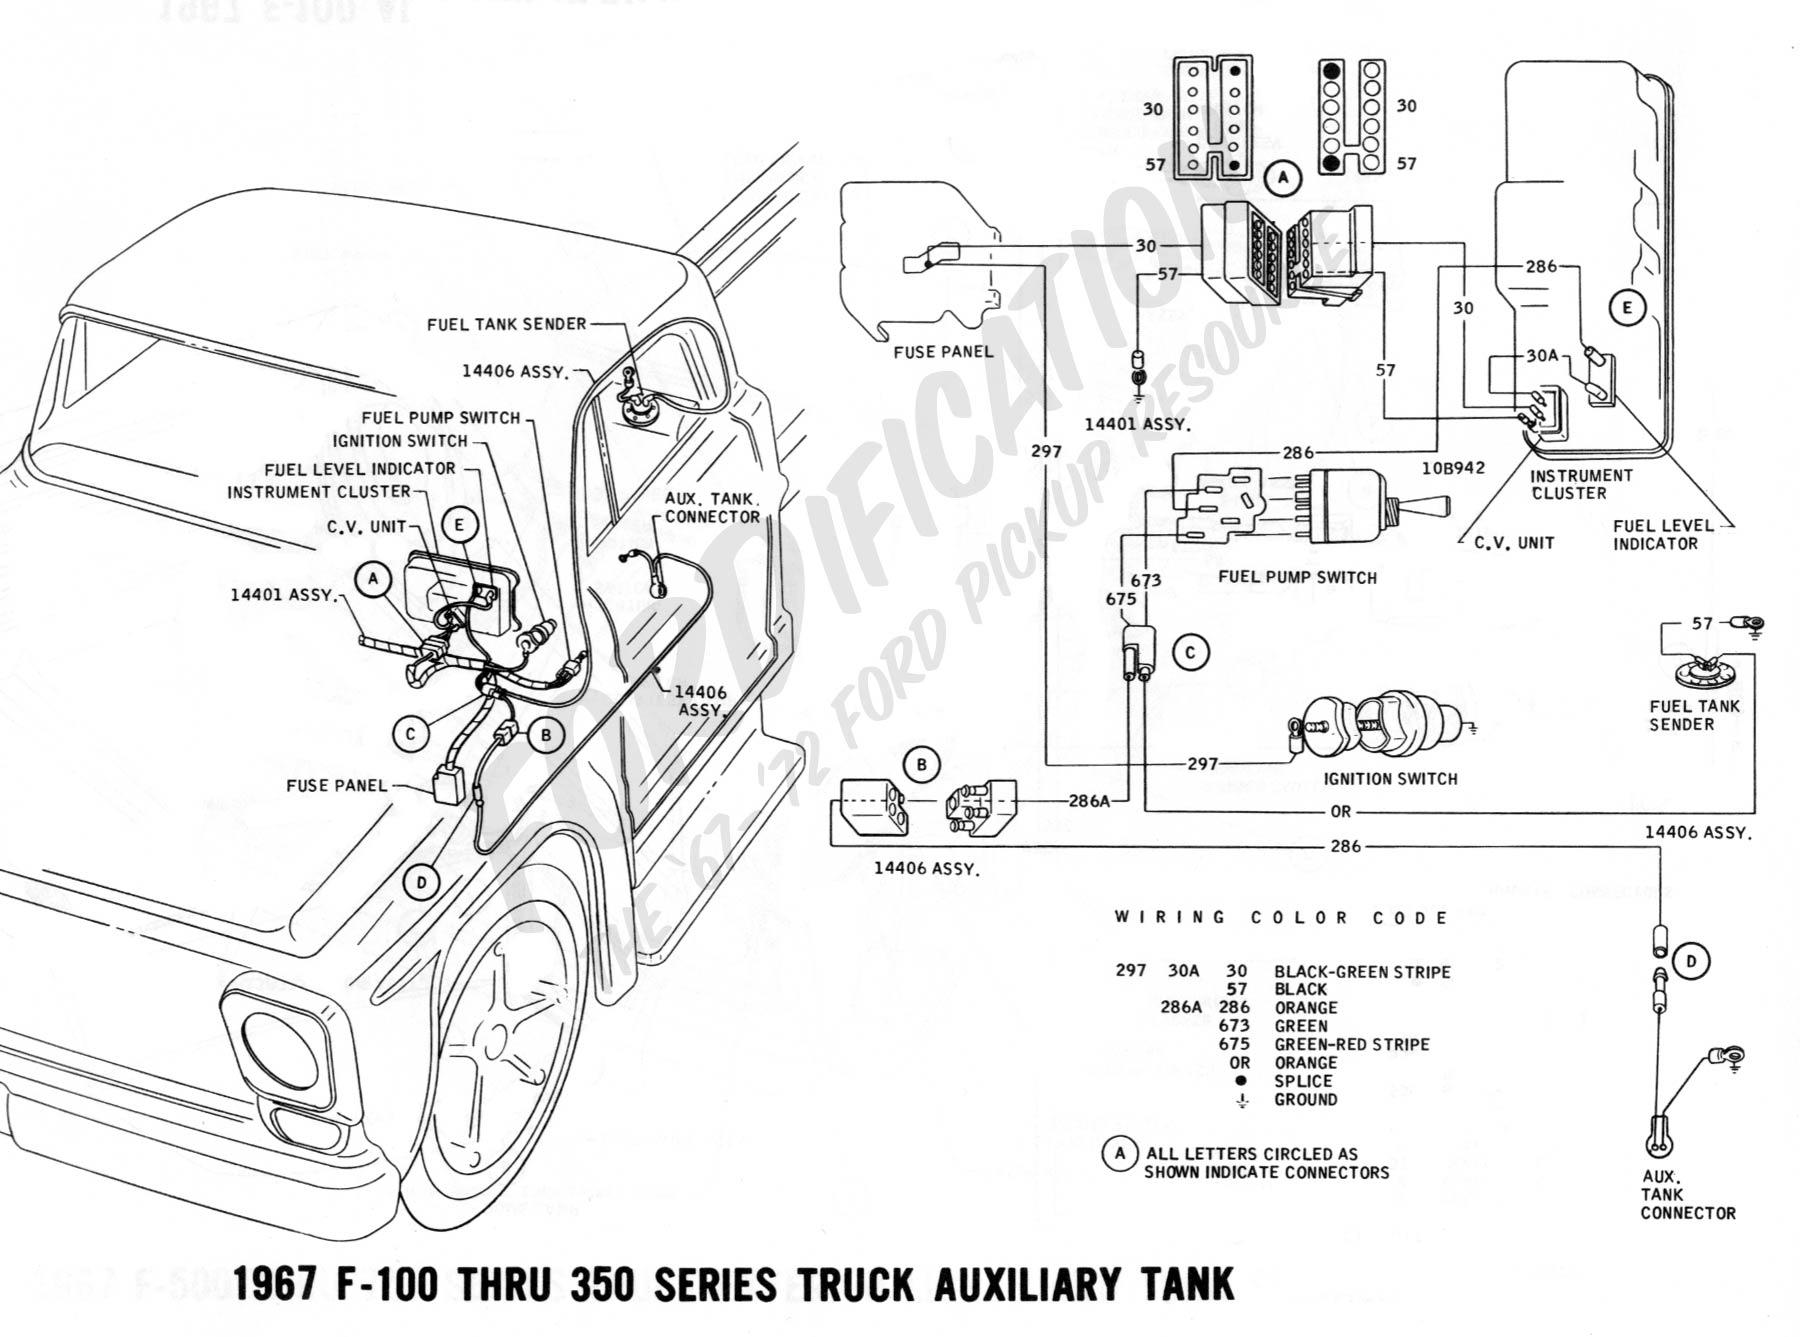 wiring 1967auxtank ford truck technical drawings and schematics section h wiring ford 390 engine wiring diagram at gsmportal.co